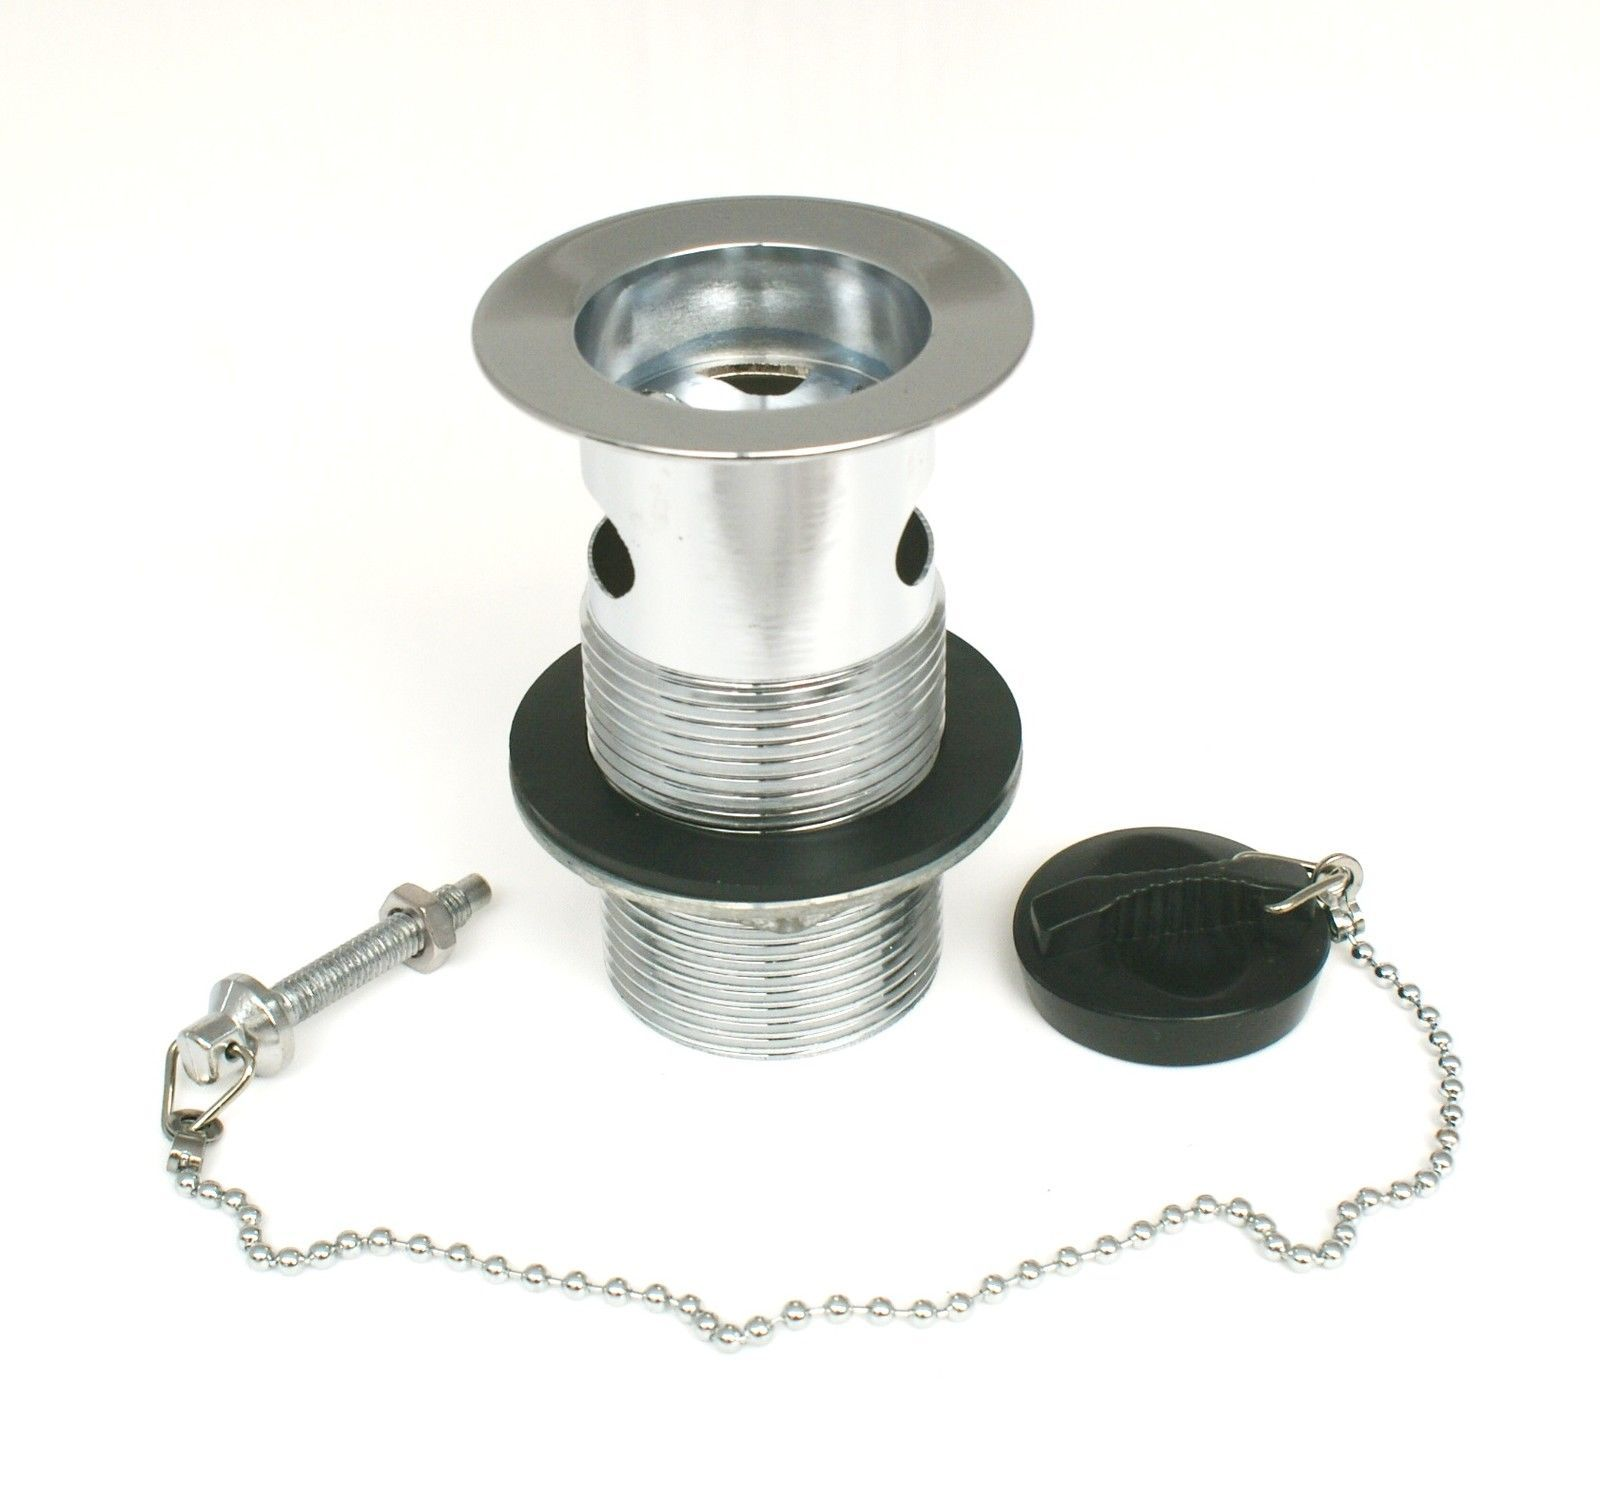 Basin Waste Grating Plug u0026 Chain